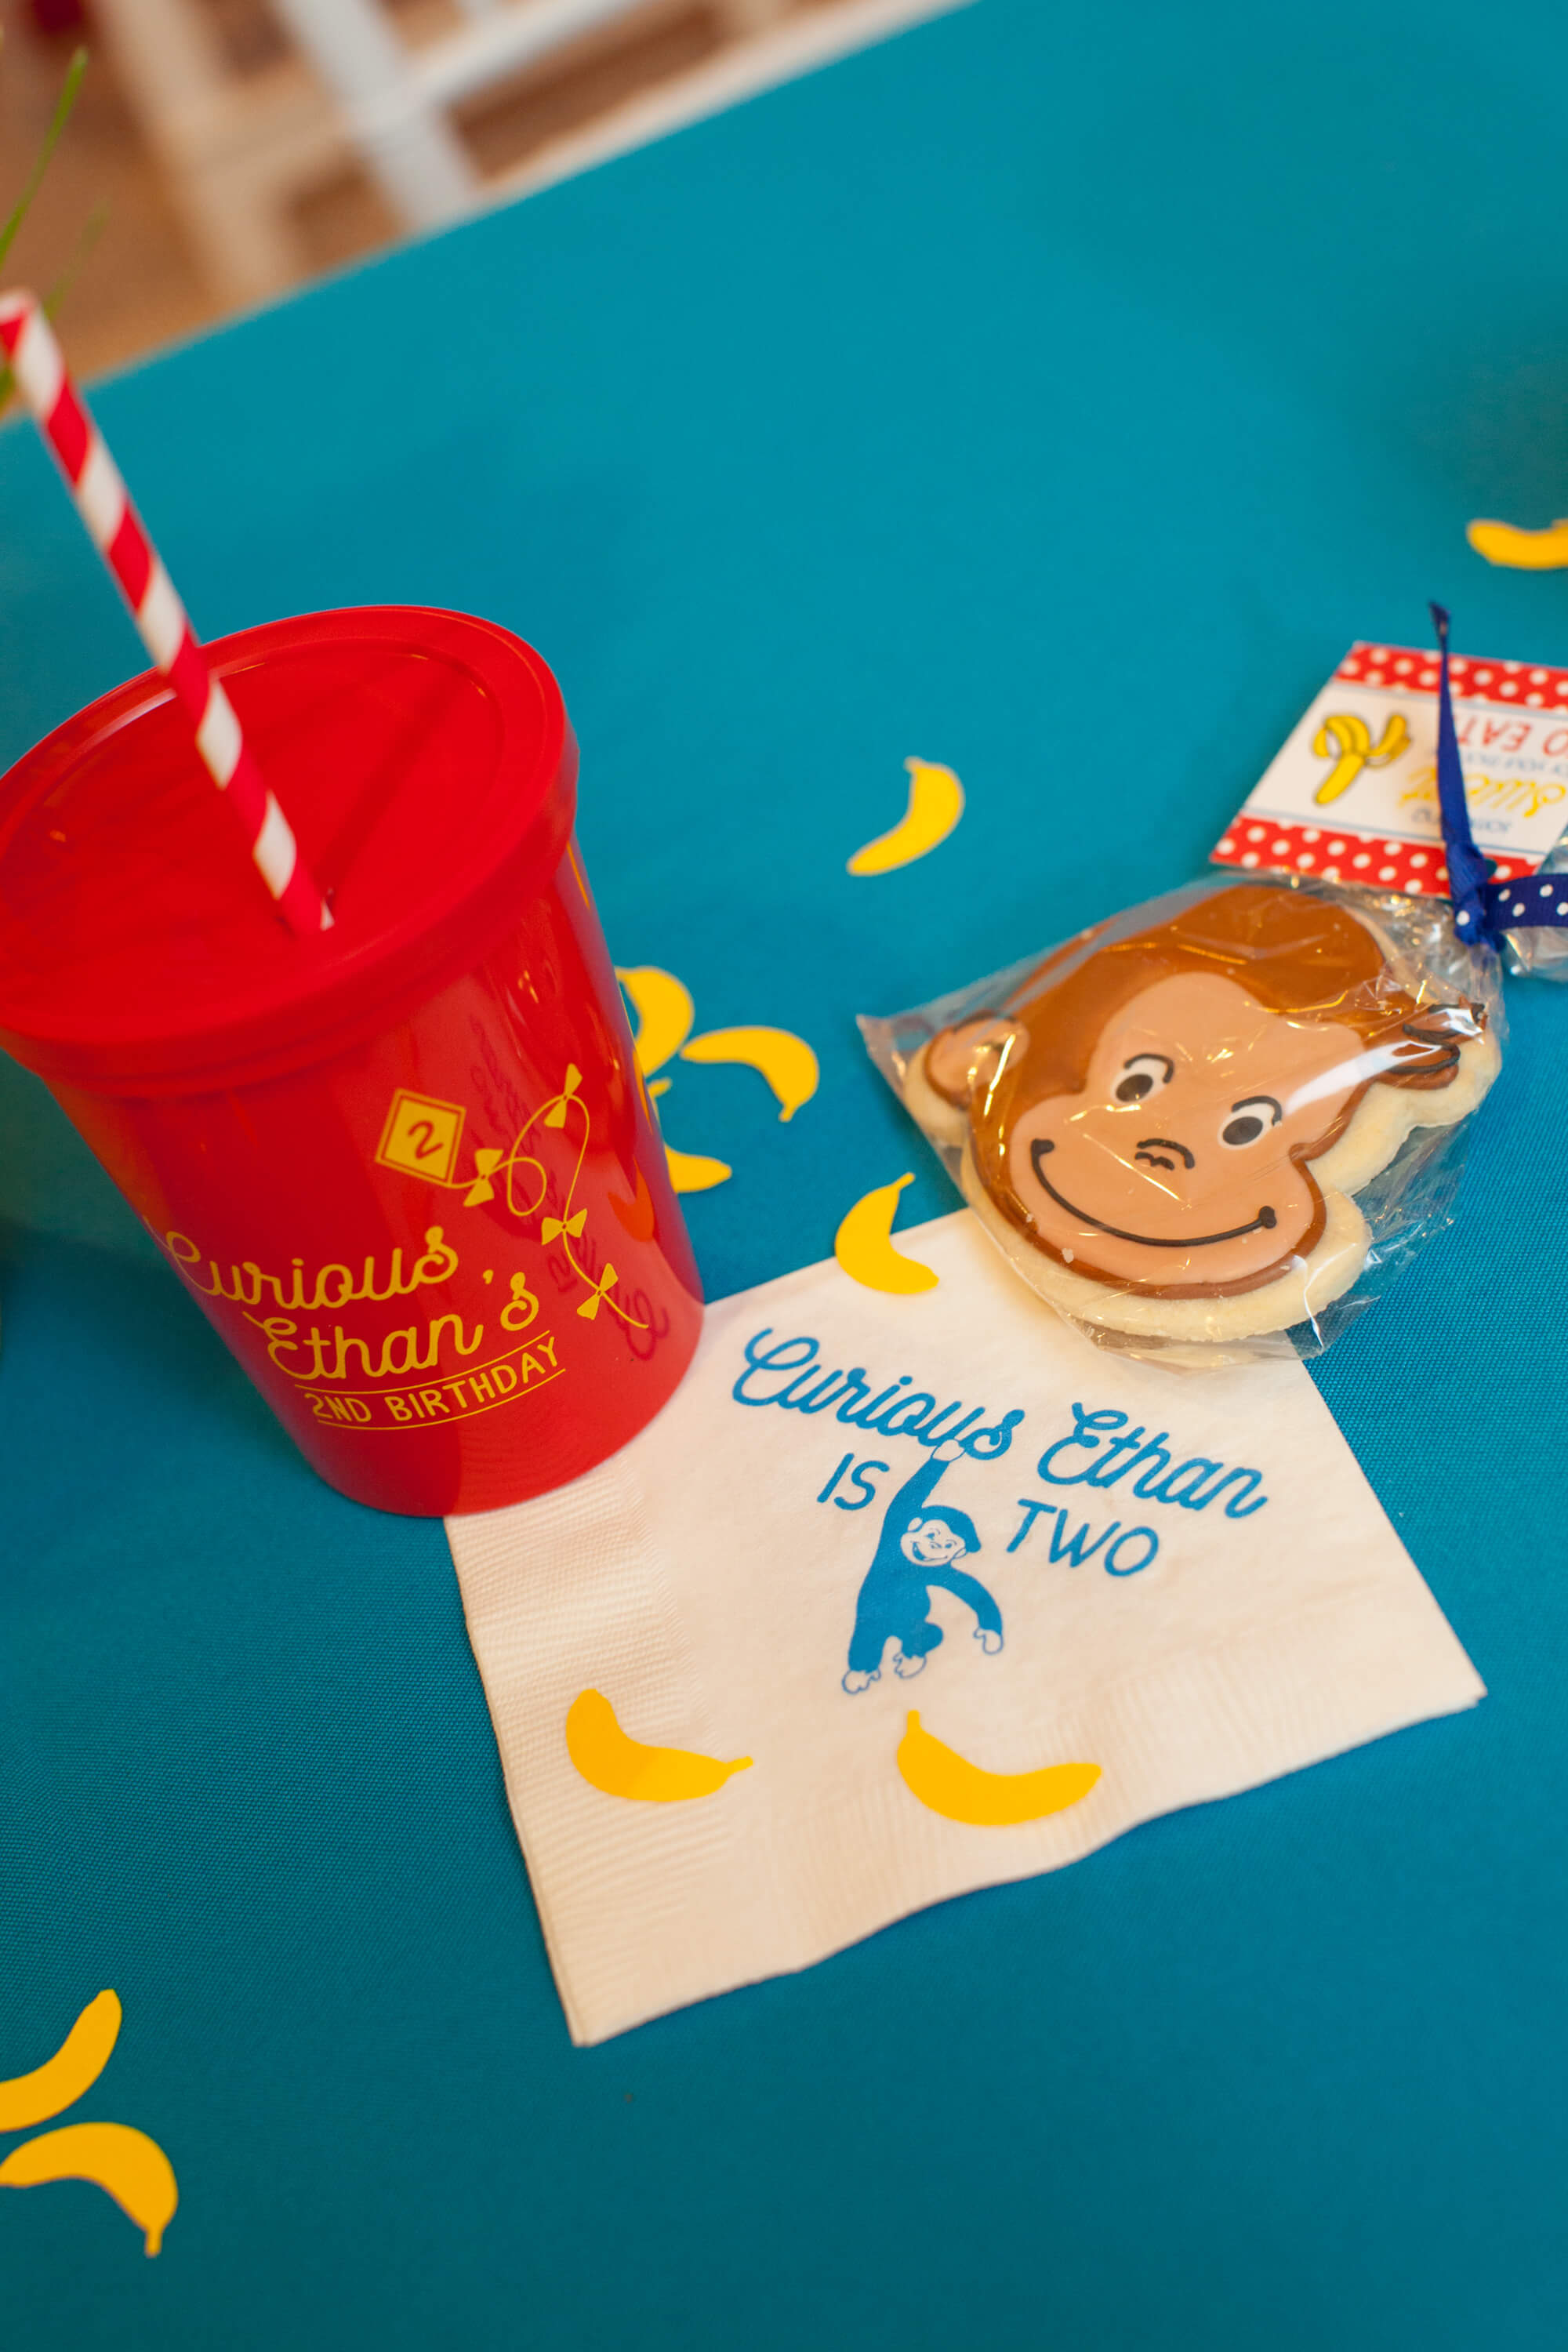 Curious George Birthday Invitation Turned Out So Cute And How Great That We Can Do Lids On The Custom Stadium Cups This Is Always A Perk For 2